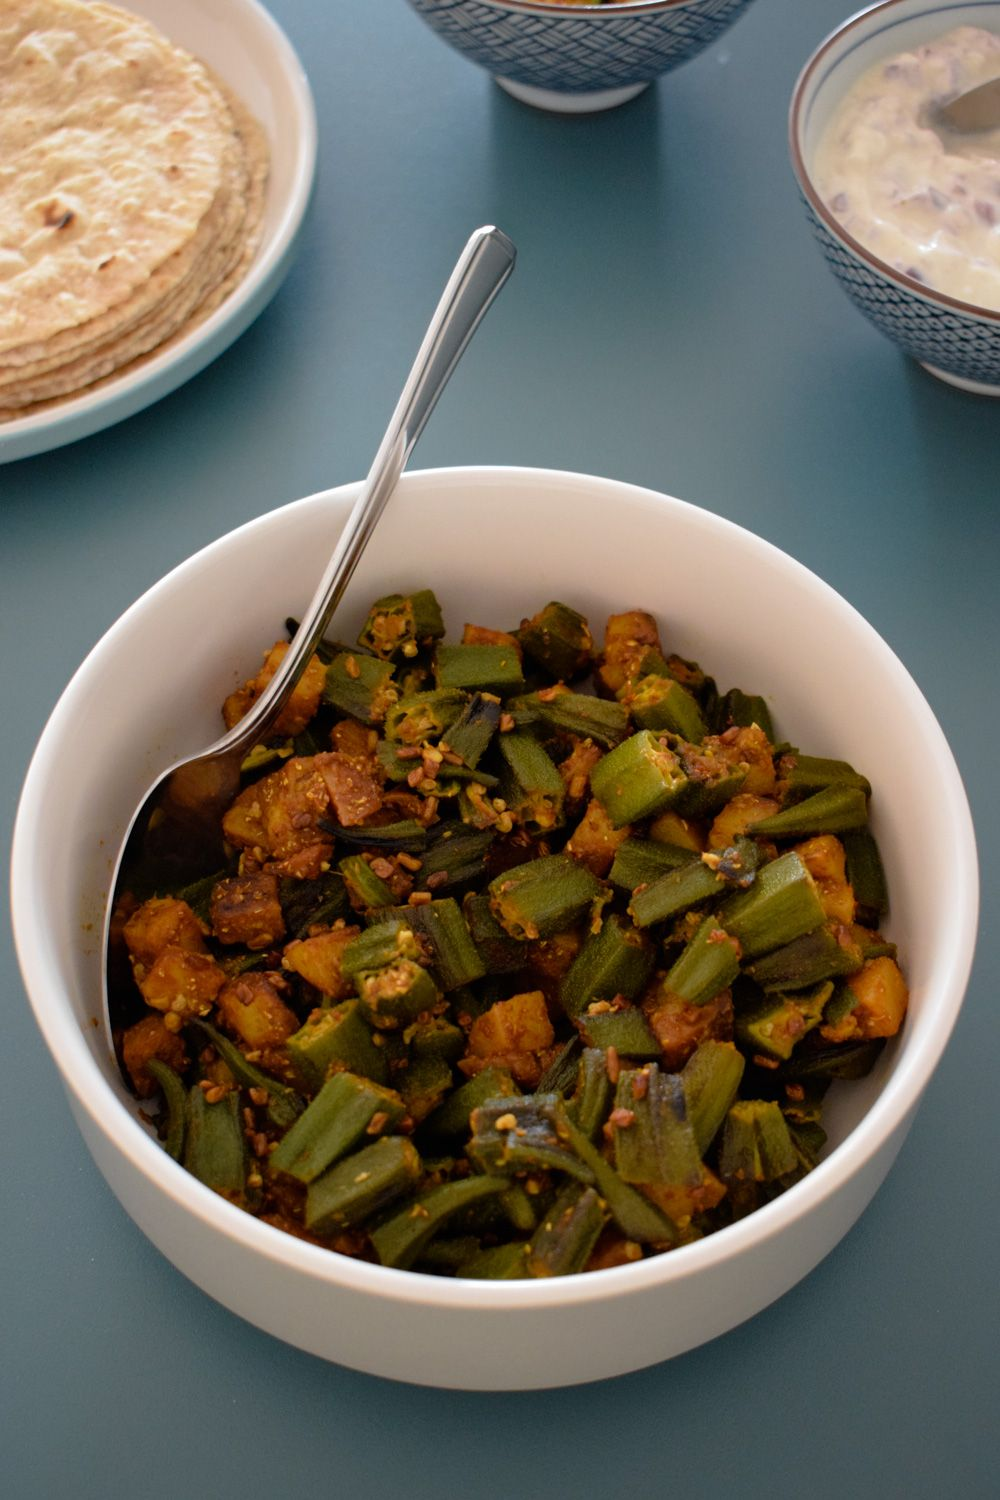 Bhinda nu shaak gujarati okra curry recipe gujarati recipes bhinda nu shaak gujarati okra curry gujarati recipesgujarati foodindian forumfinder Gallery